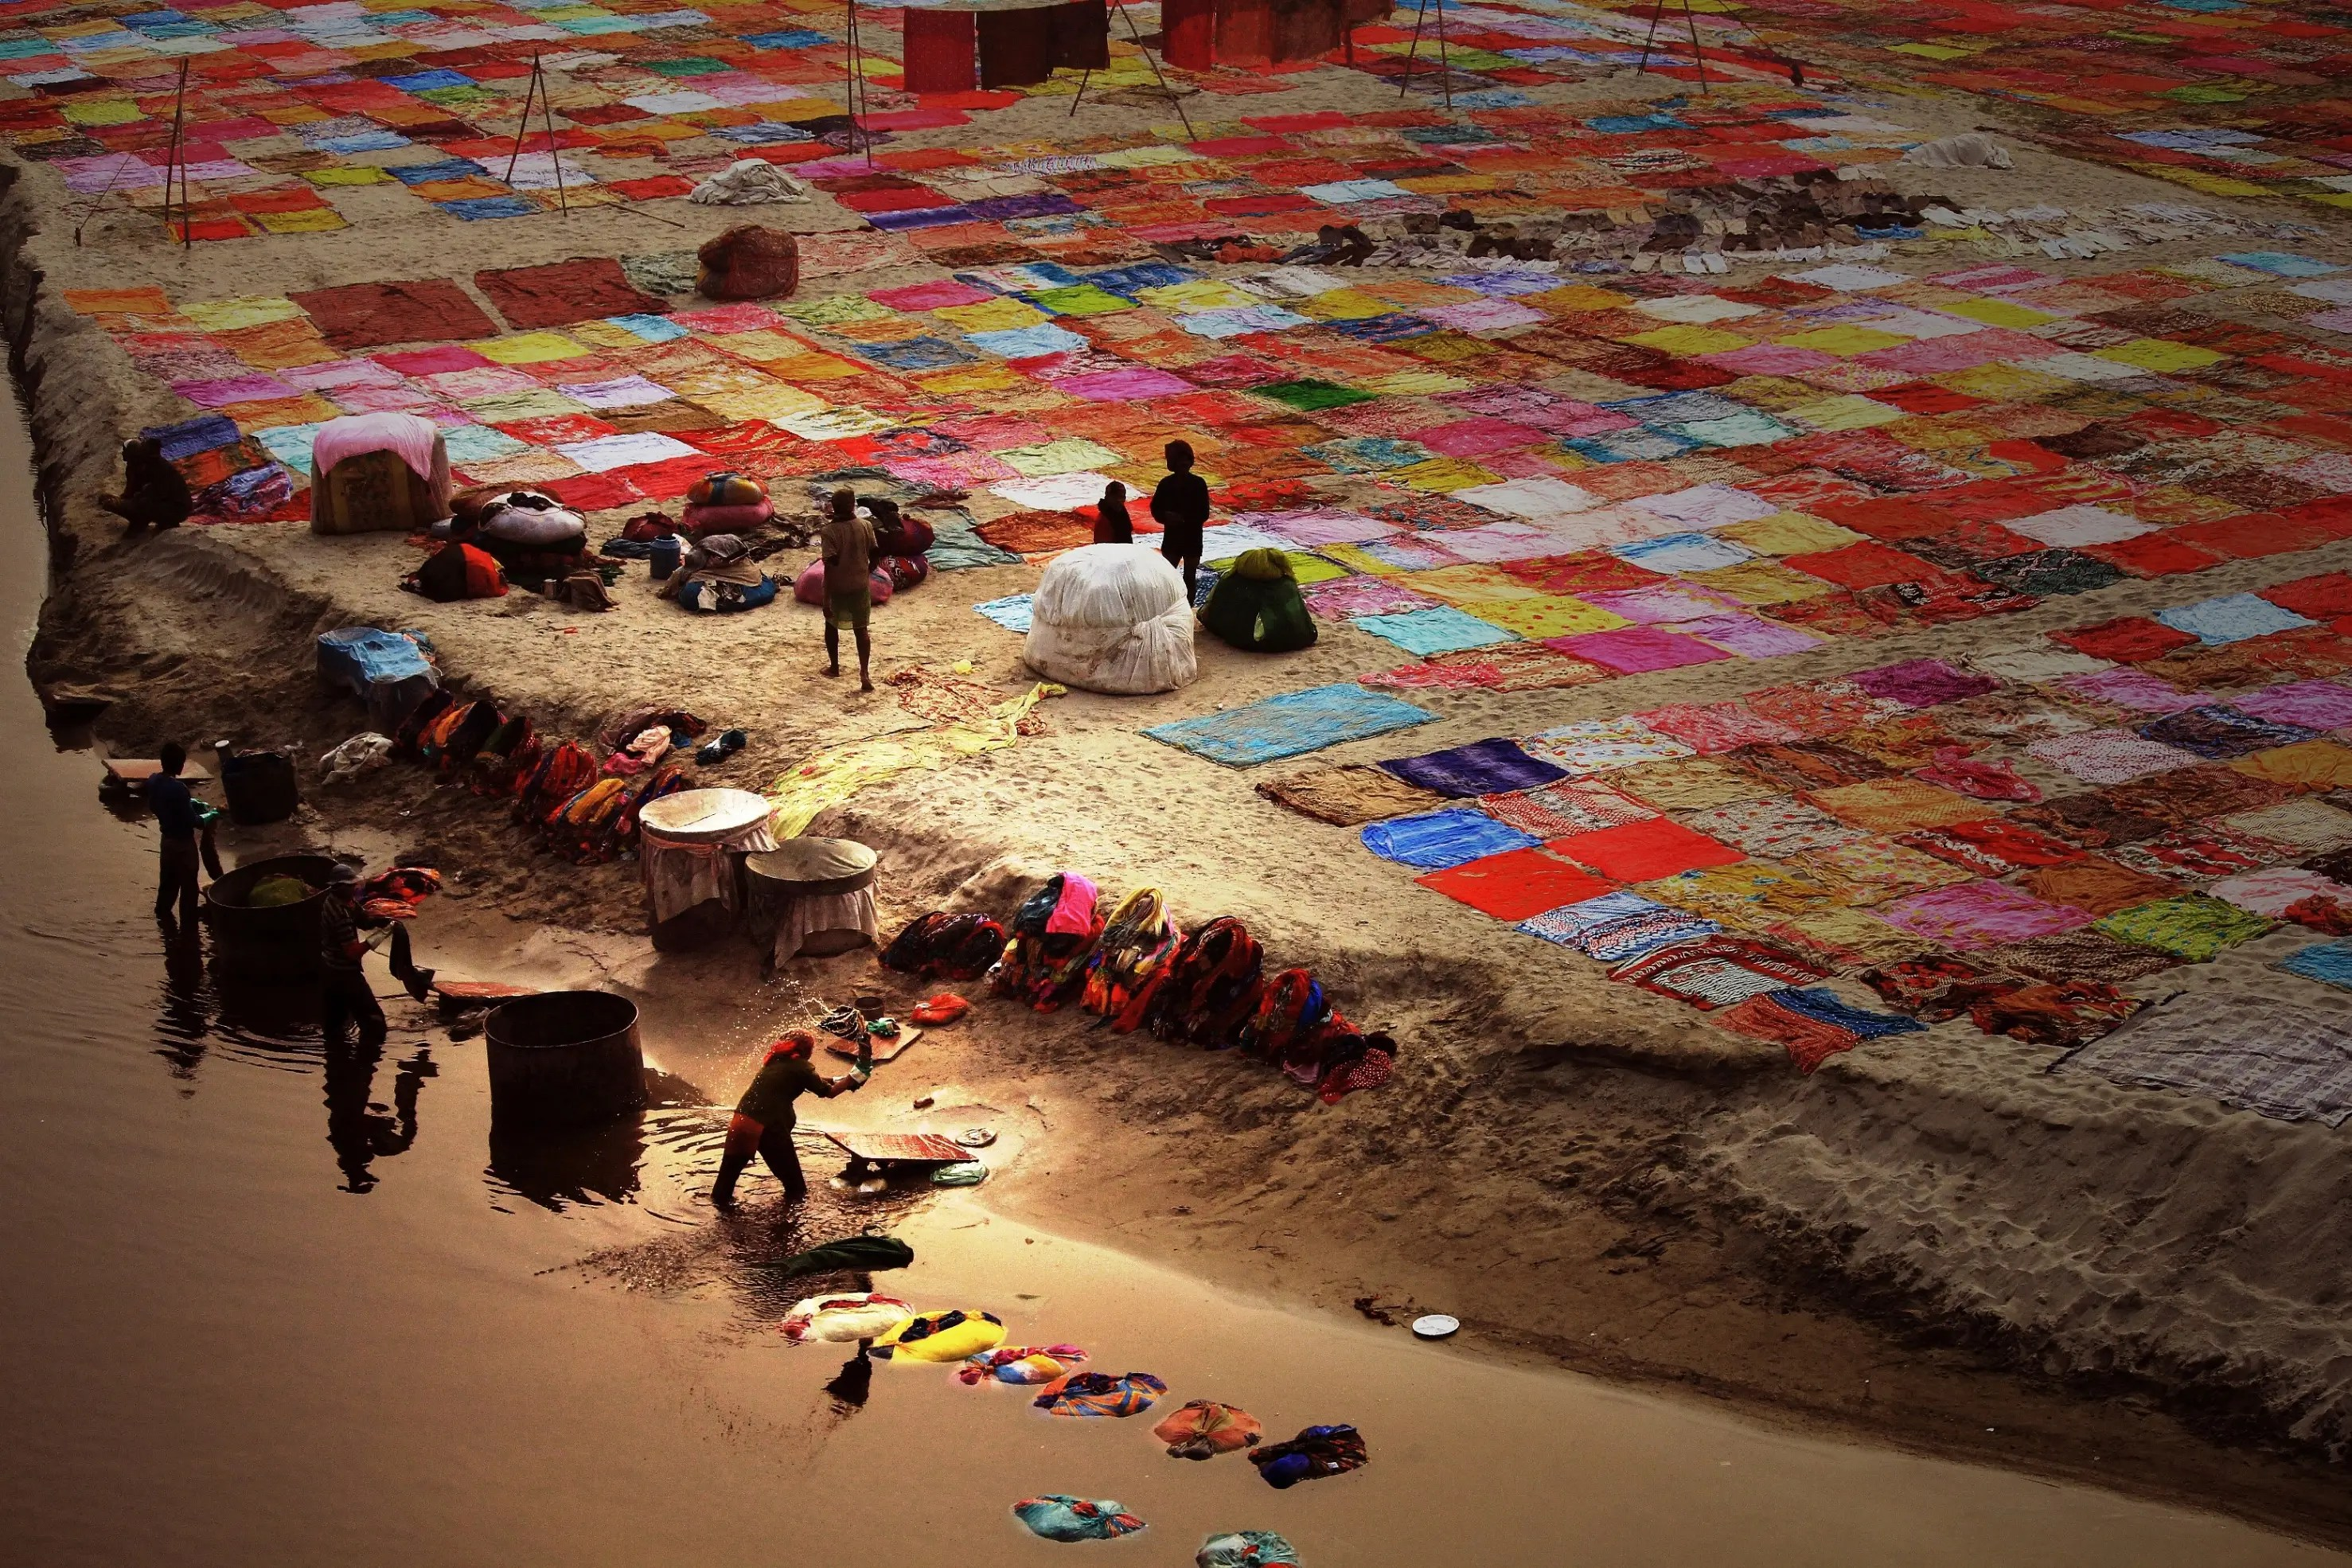 """India: """"Colorful India"""" by Bisheswar Choudhury"""